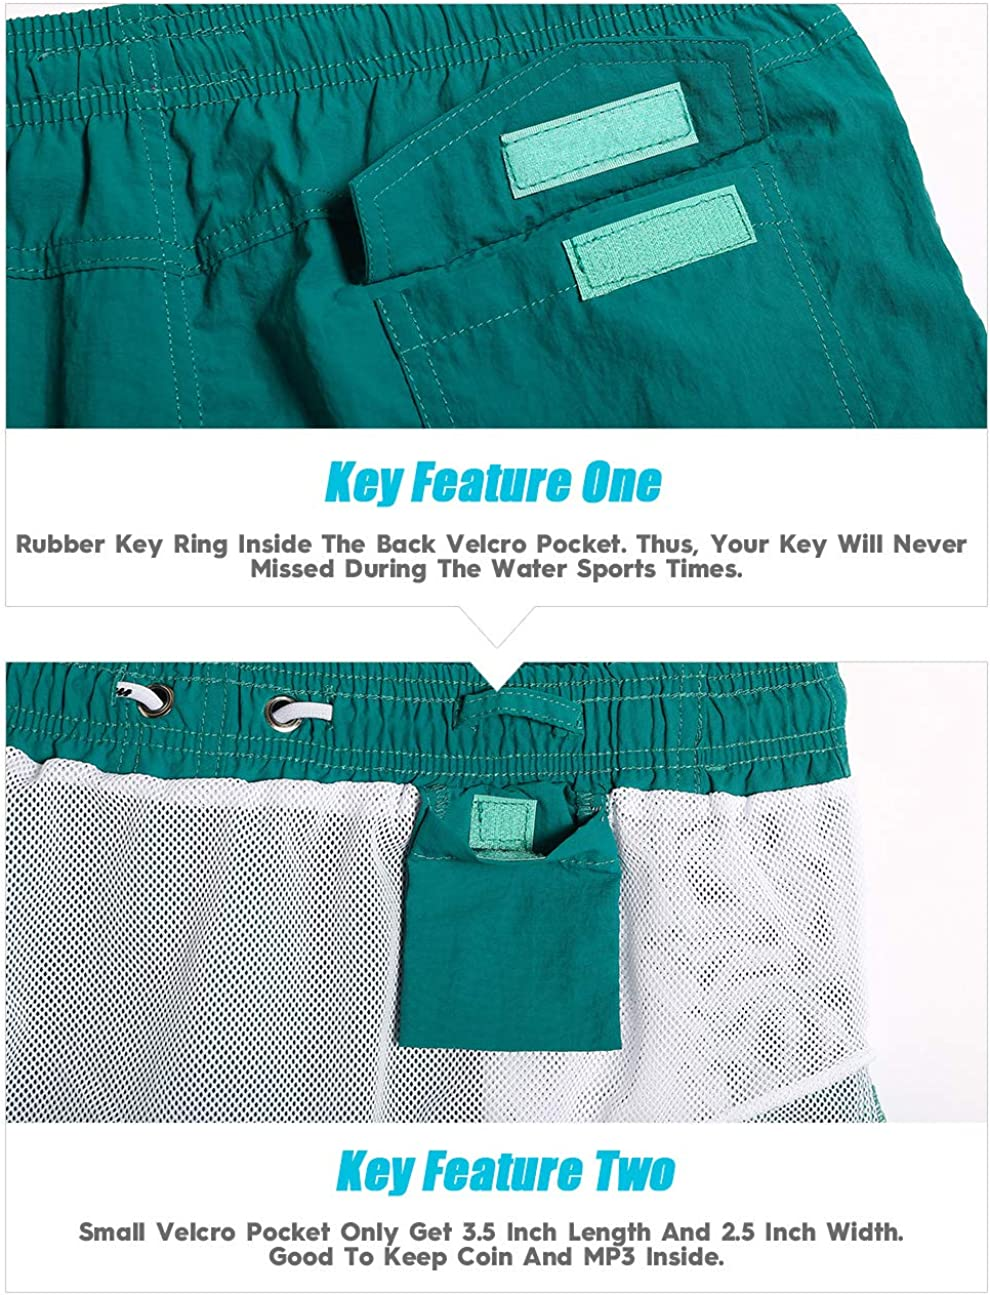 MaaMgic Mens 5 Short Swim Trunks with Mesh Lining Quick Dry Bathing Suits Swimming Shorts Swimsuit